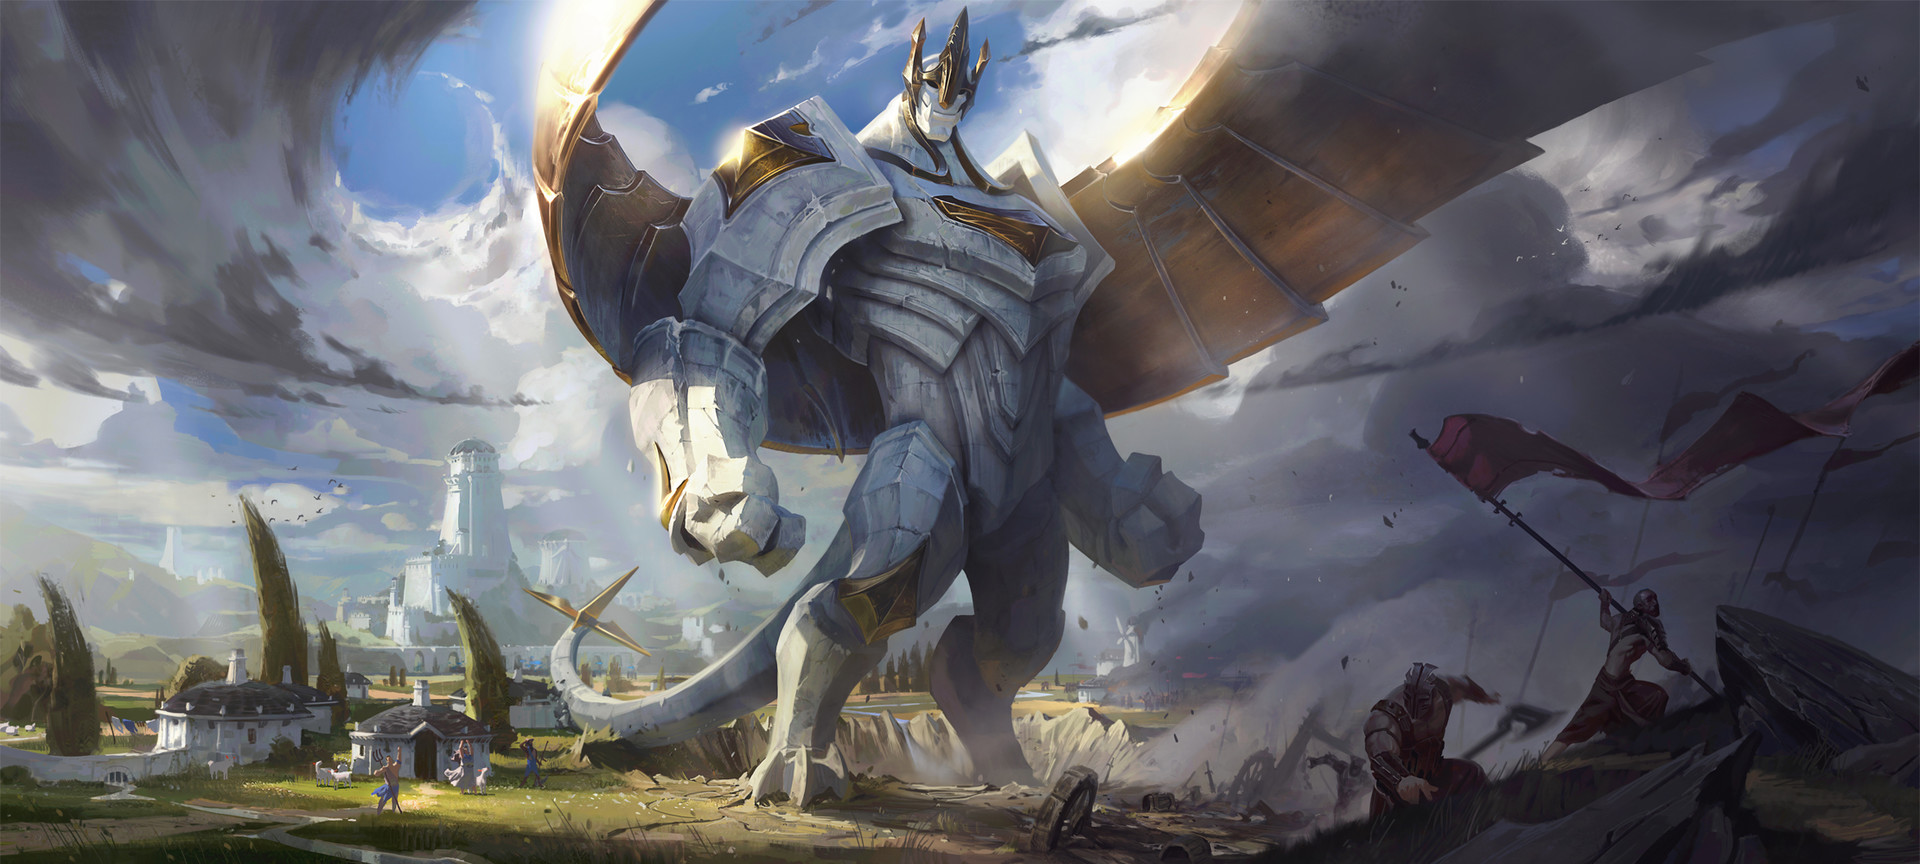 General 1920x864 giant digital art hero city war sky wings armor Victor Maury League of Legends Galio